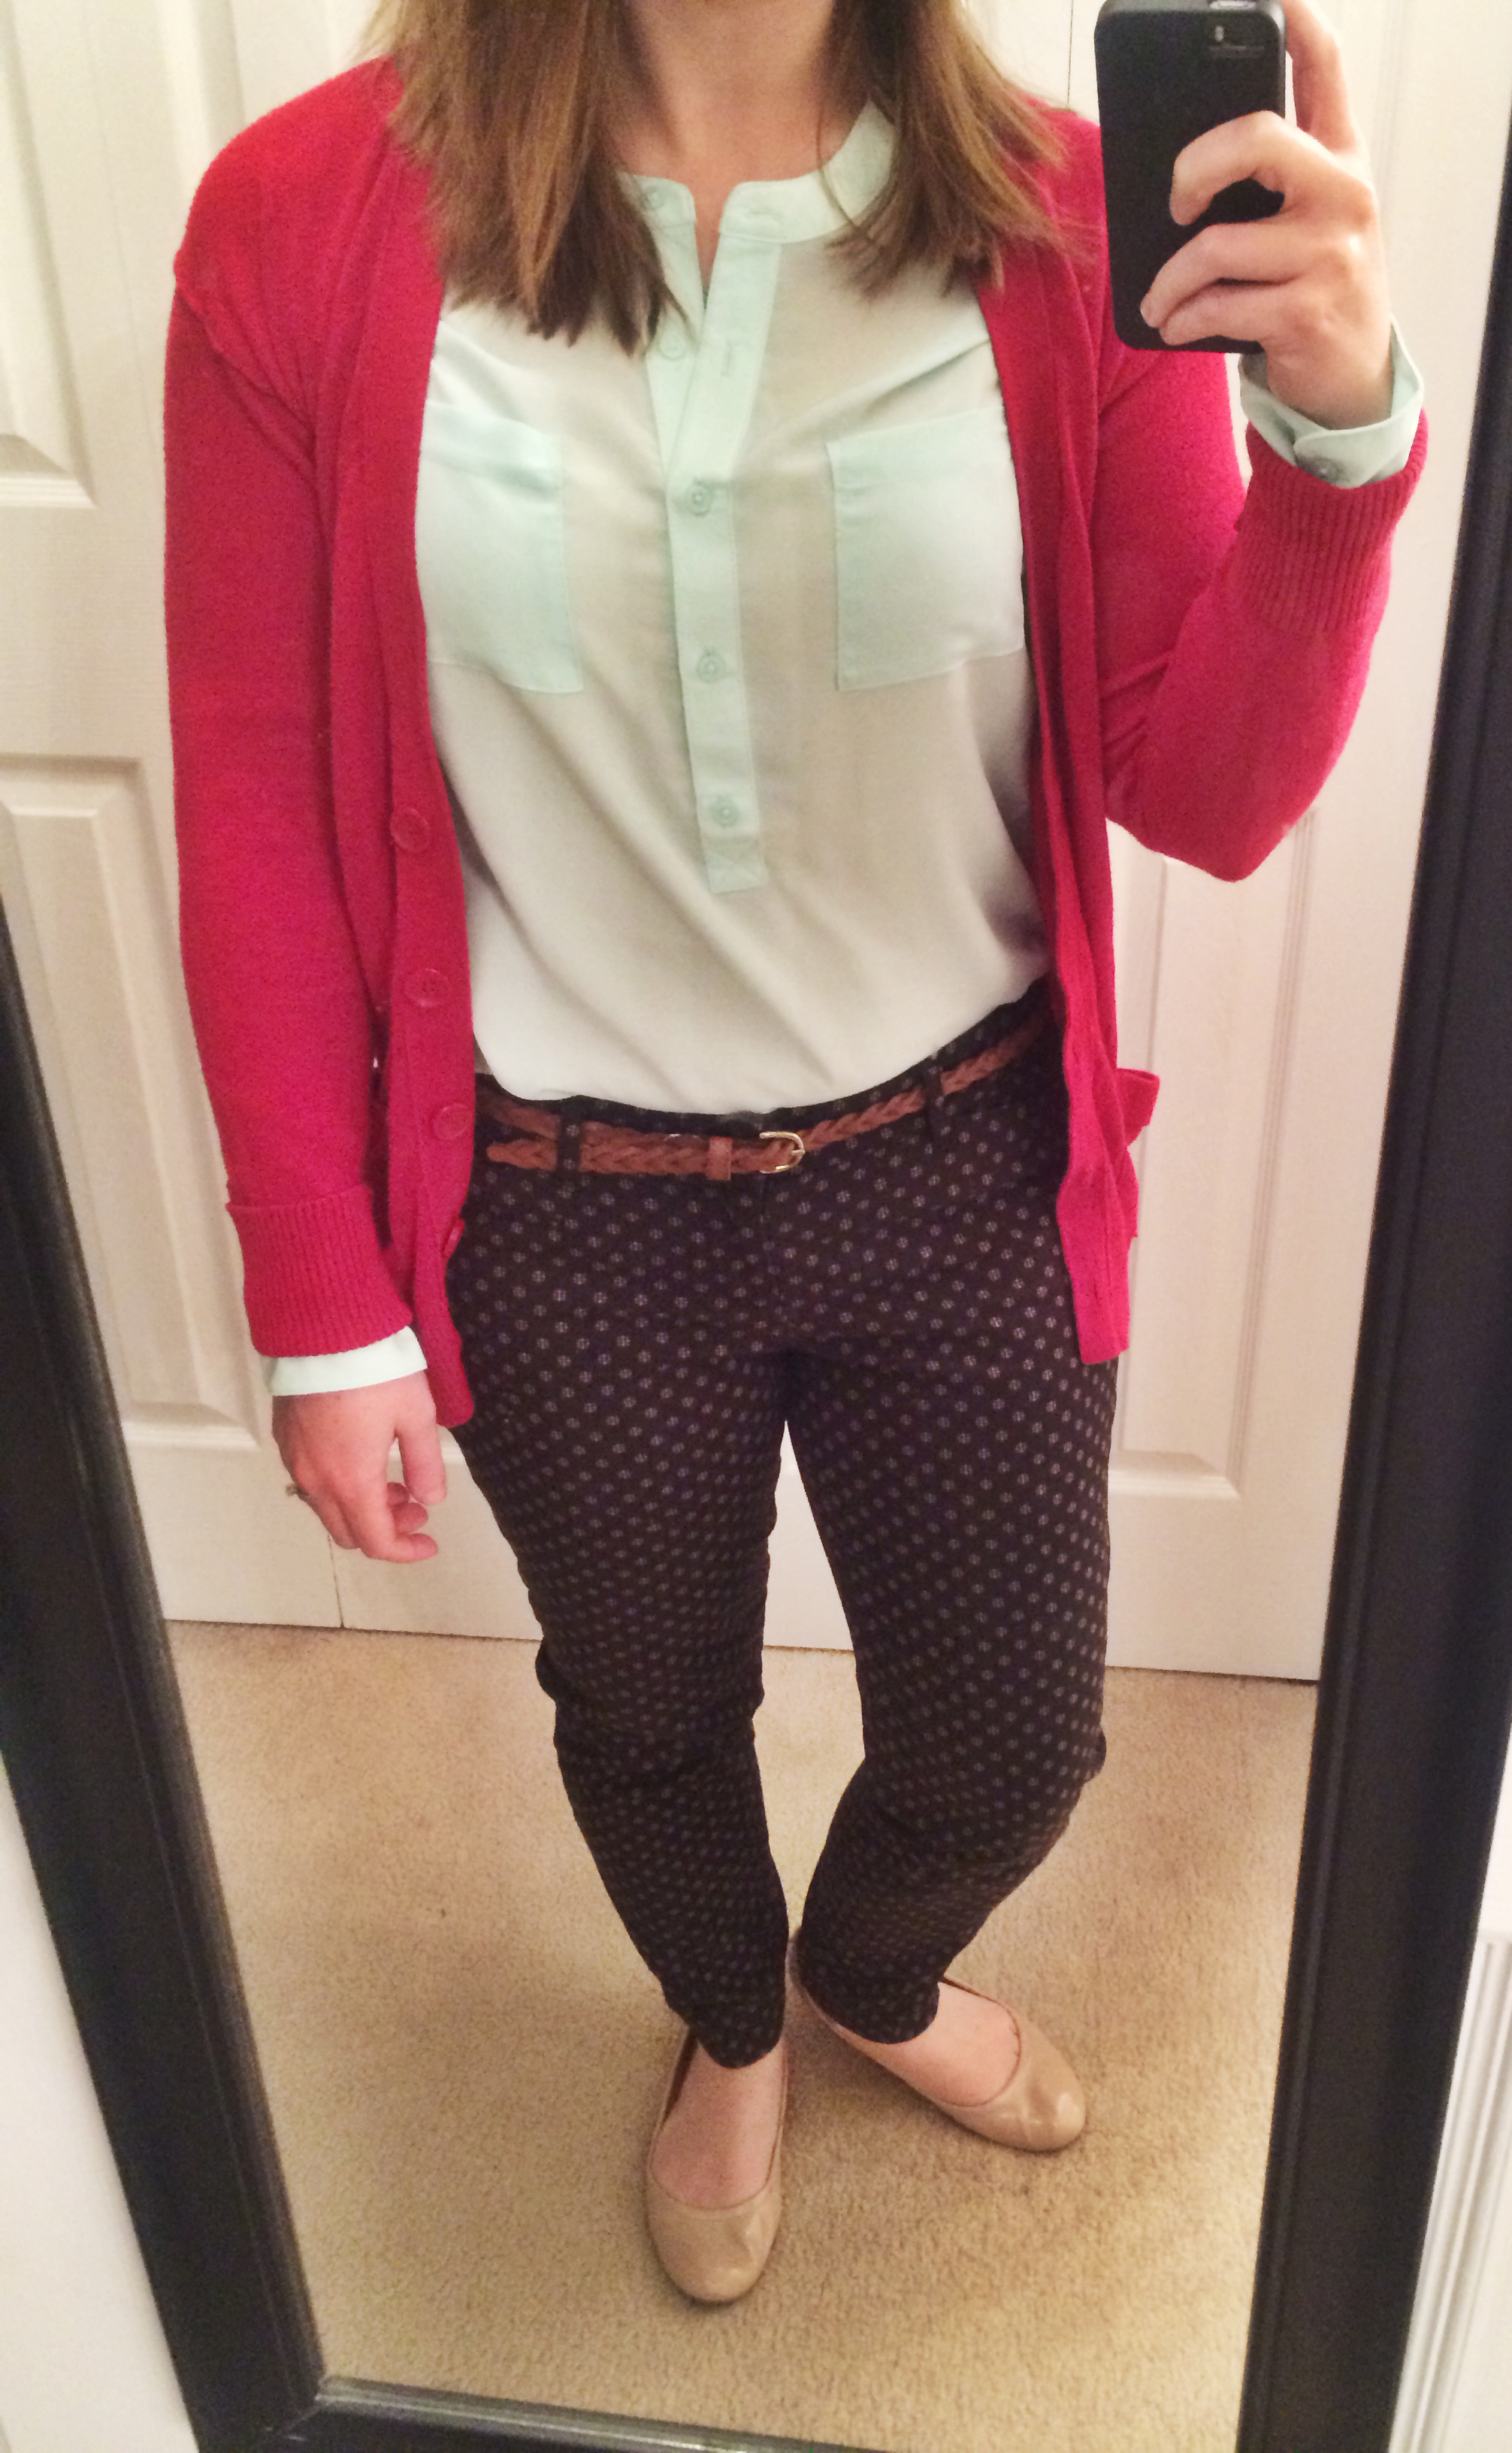 6a9a2cc430 Blouse  Old Navy — Sweater  Old Navy — Pants  Old Navy — Belt  Target —  Flats  Target